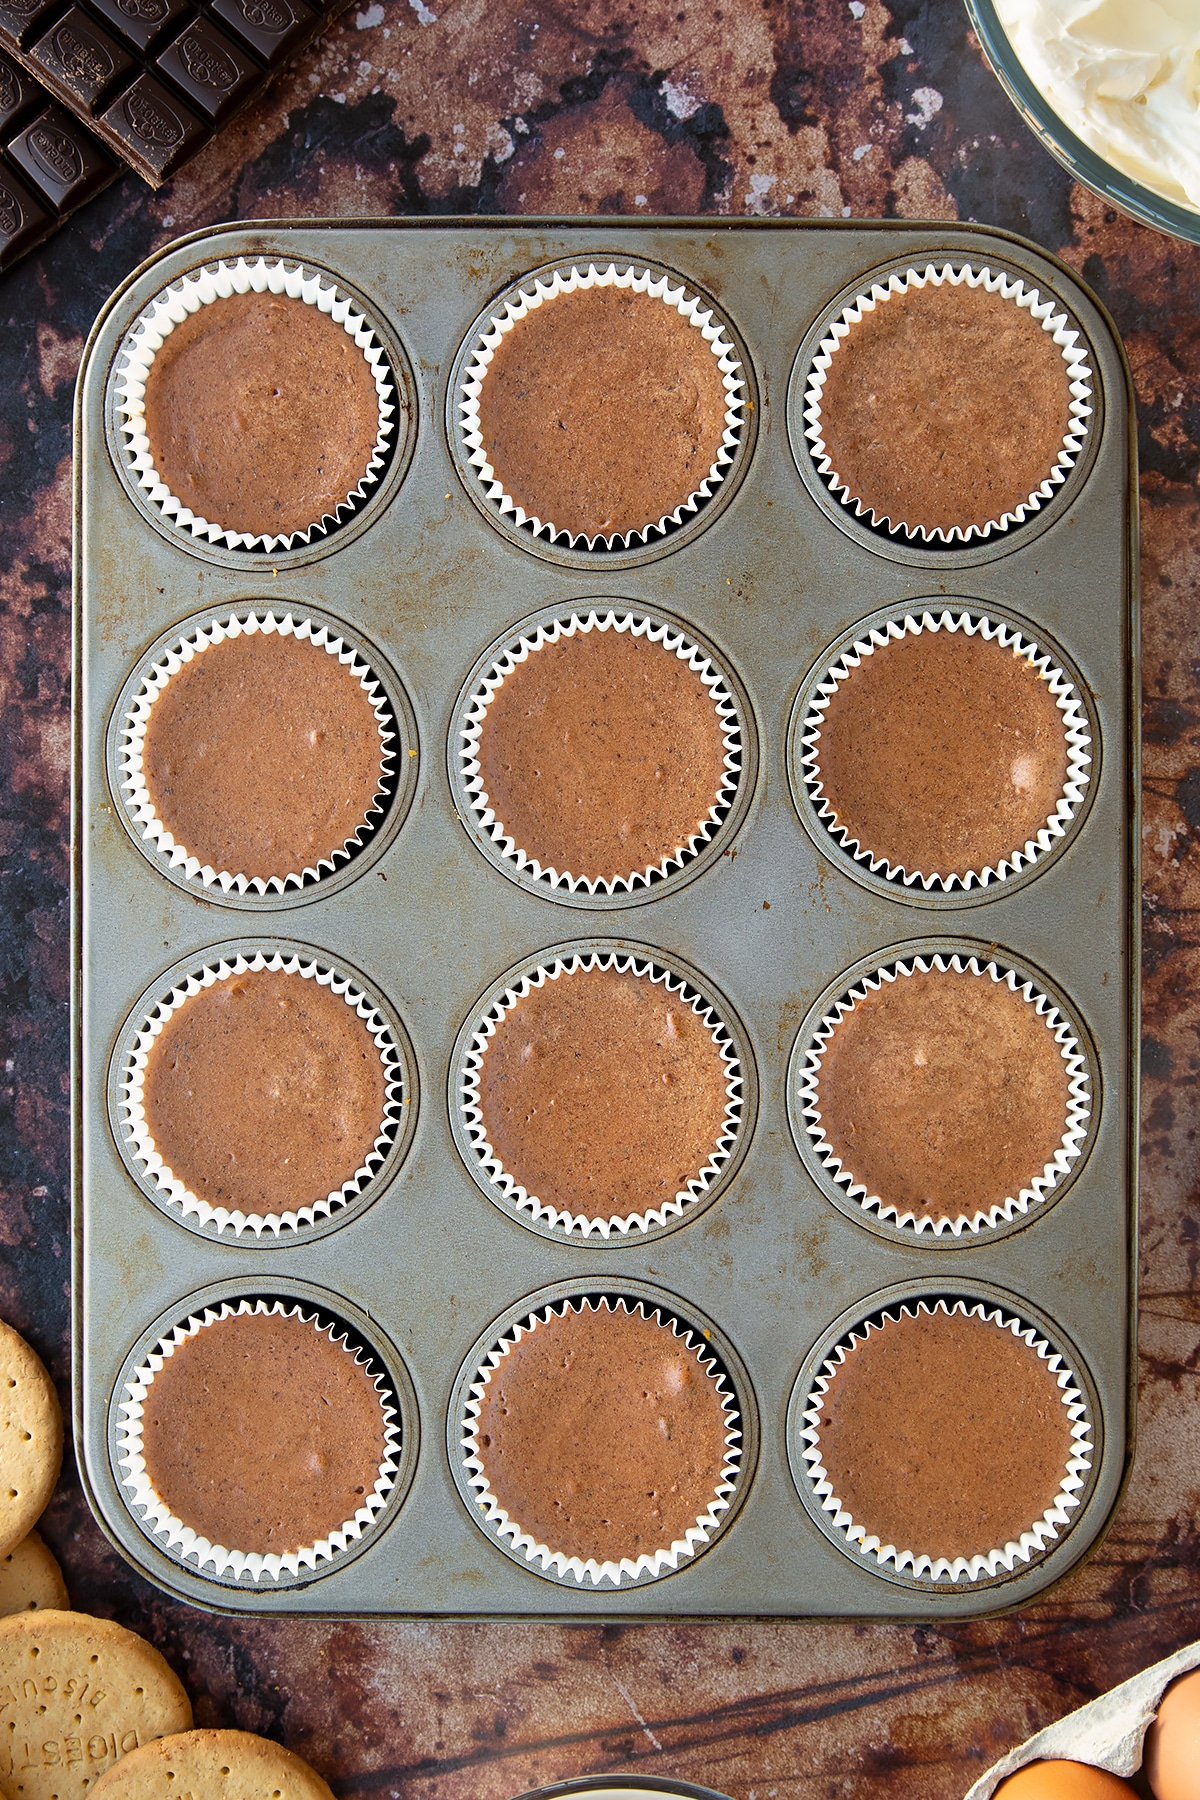 Chocolate cheesecake cupcakes, freshly baked in a muffin tray.